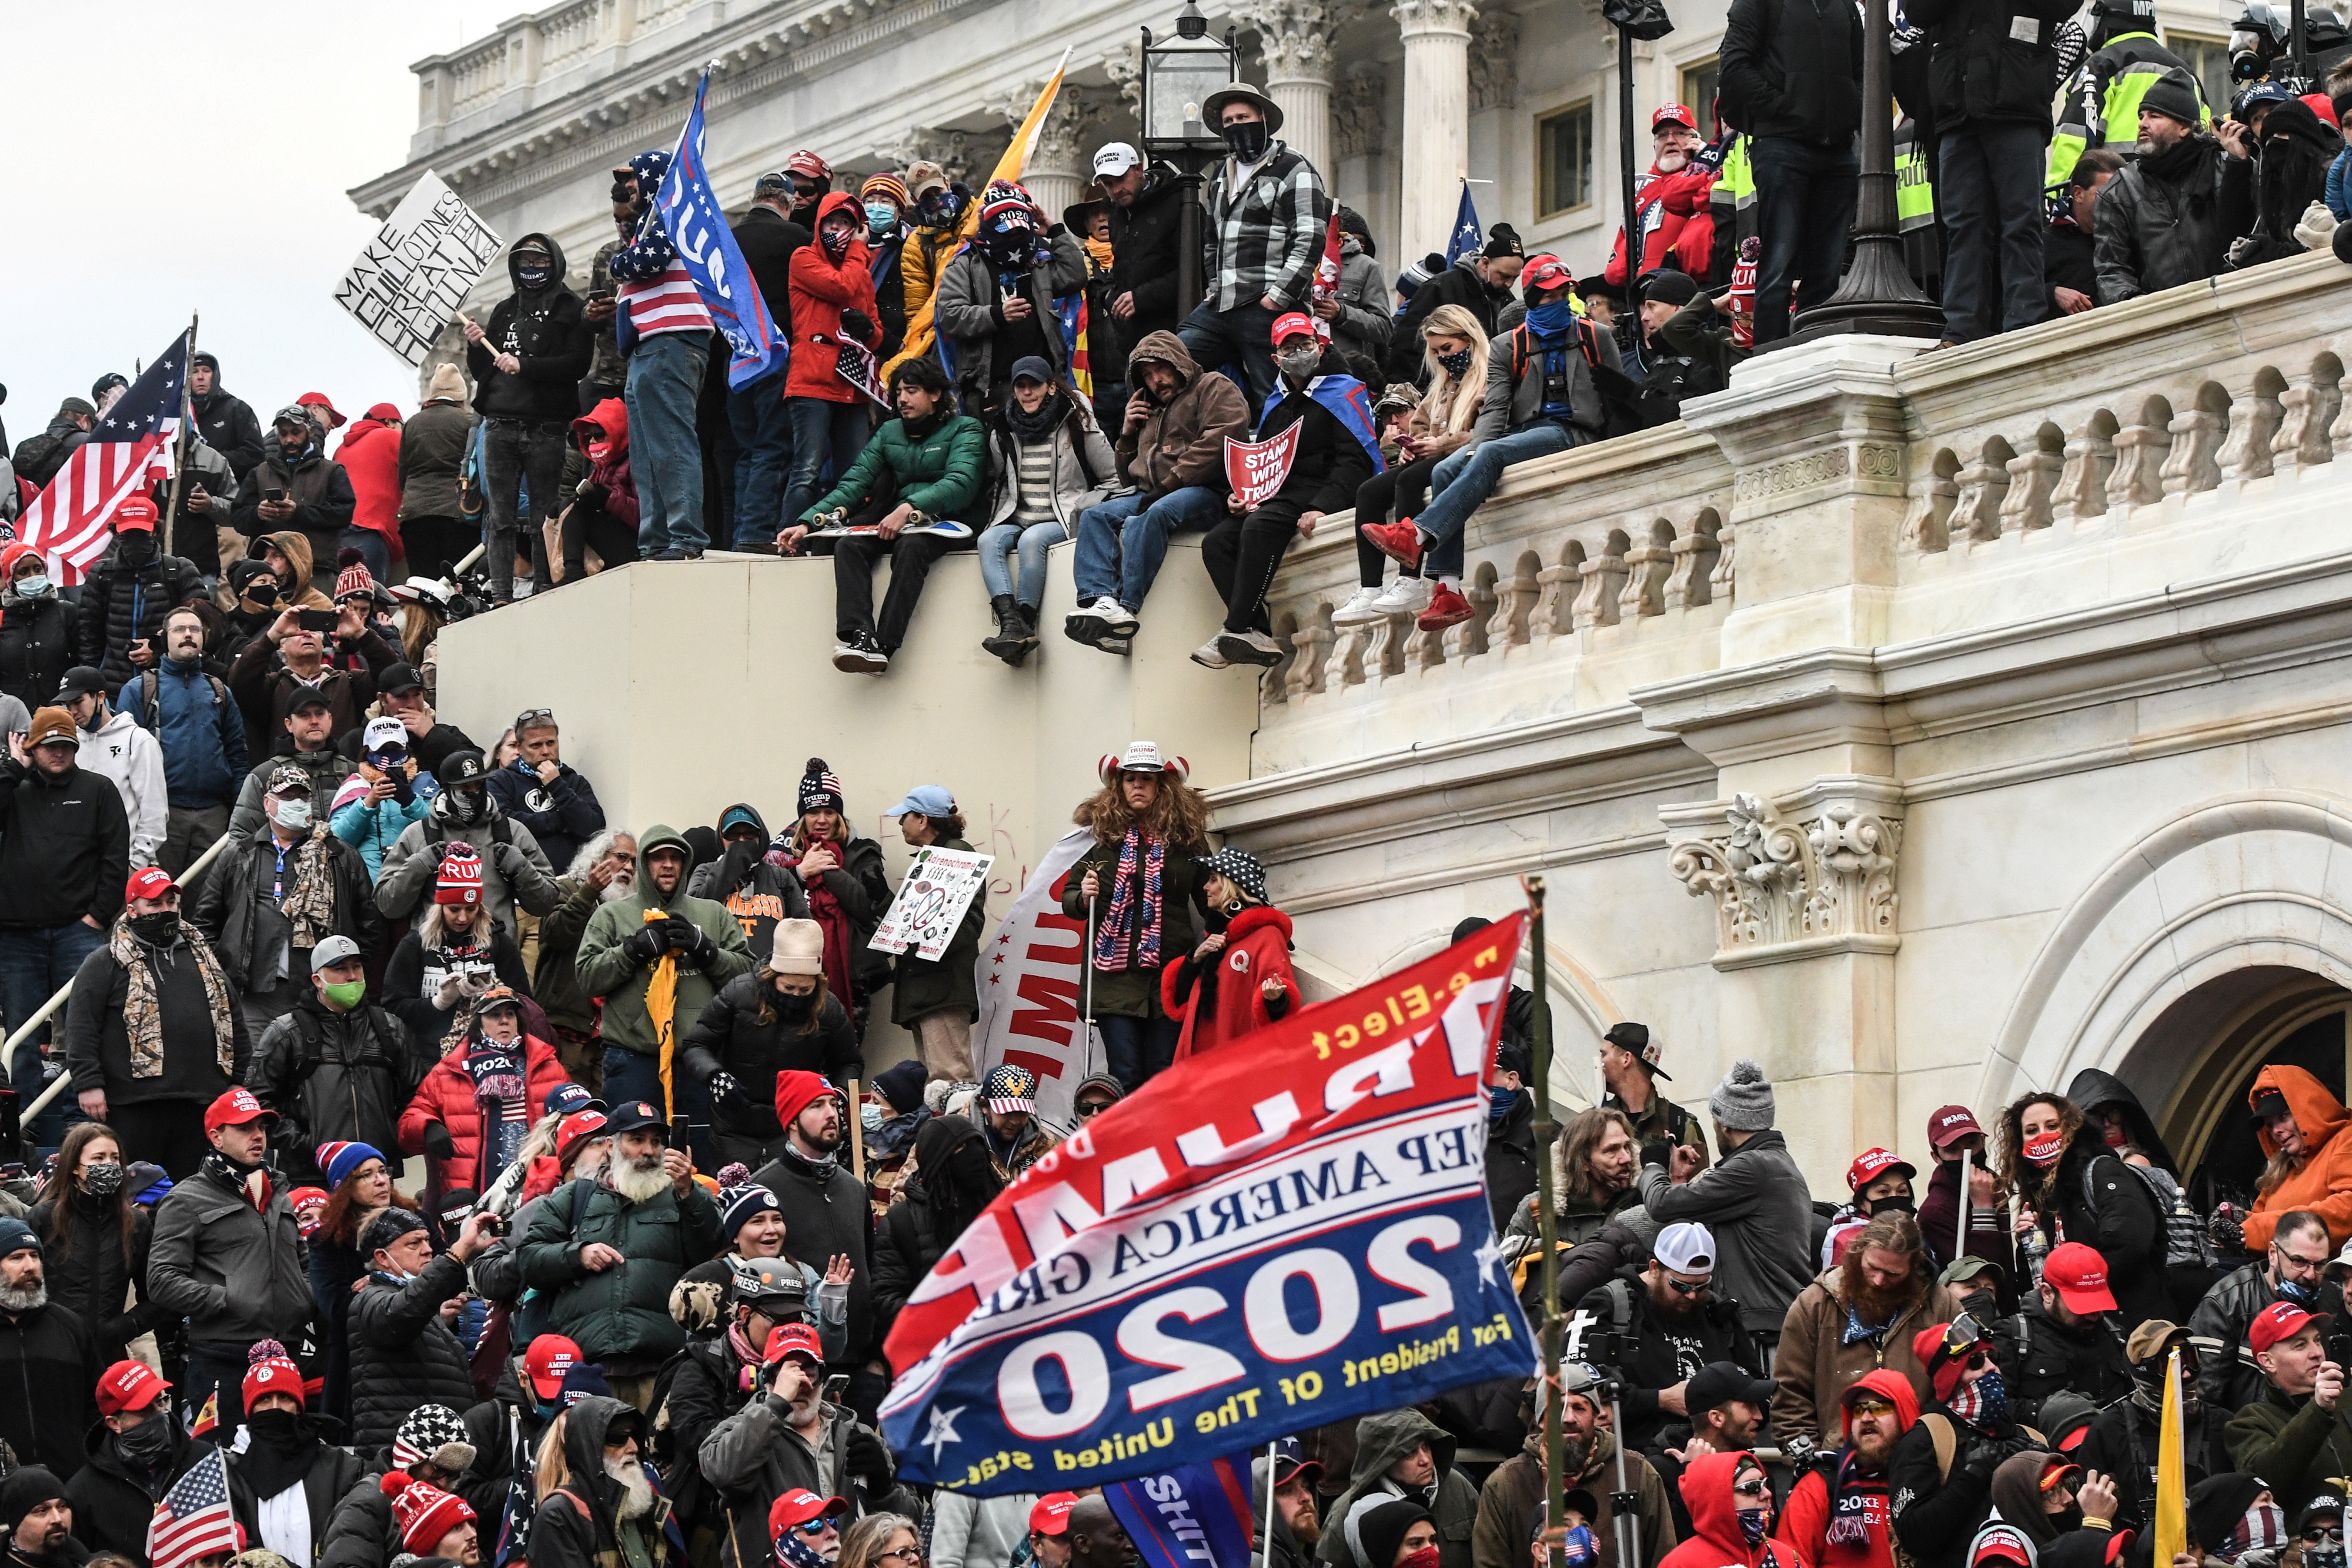 Supporters of U.S. President Donald Trump gather at the west entrance of the Capitol during a